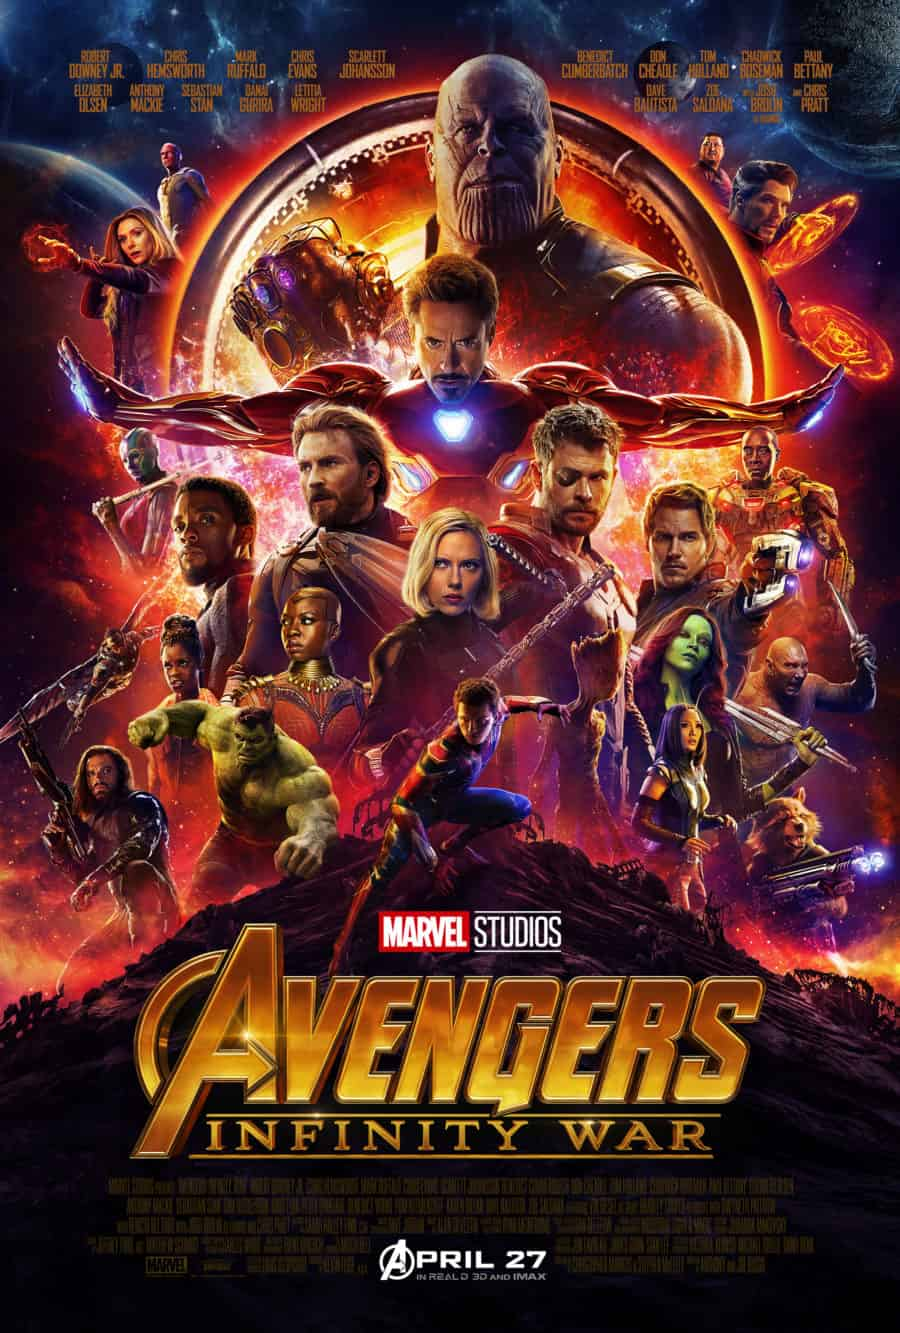 Marvel Studios Releases Avengers Infinity War Poster And Trailer